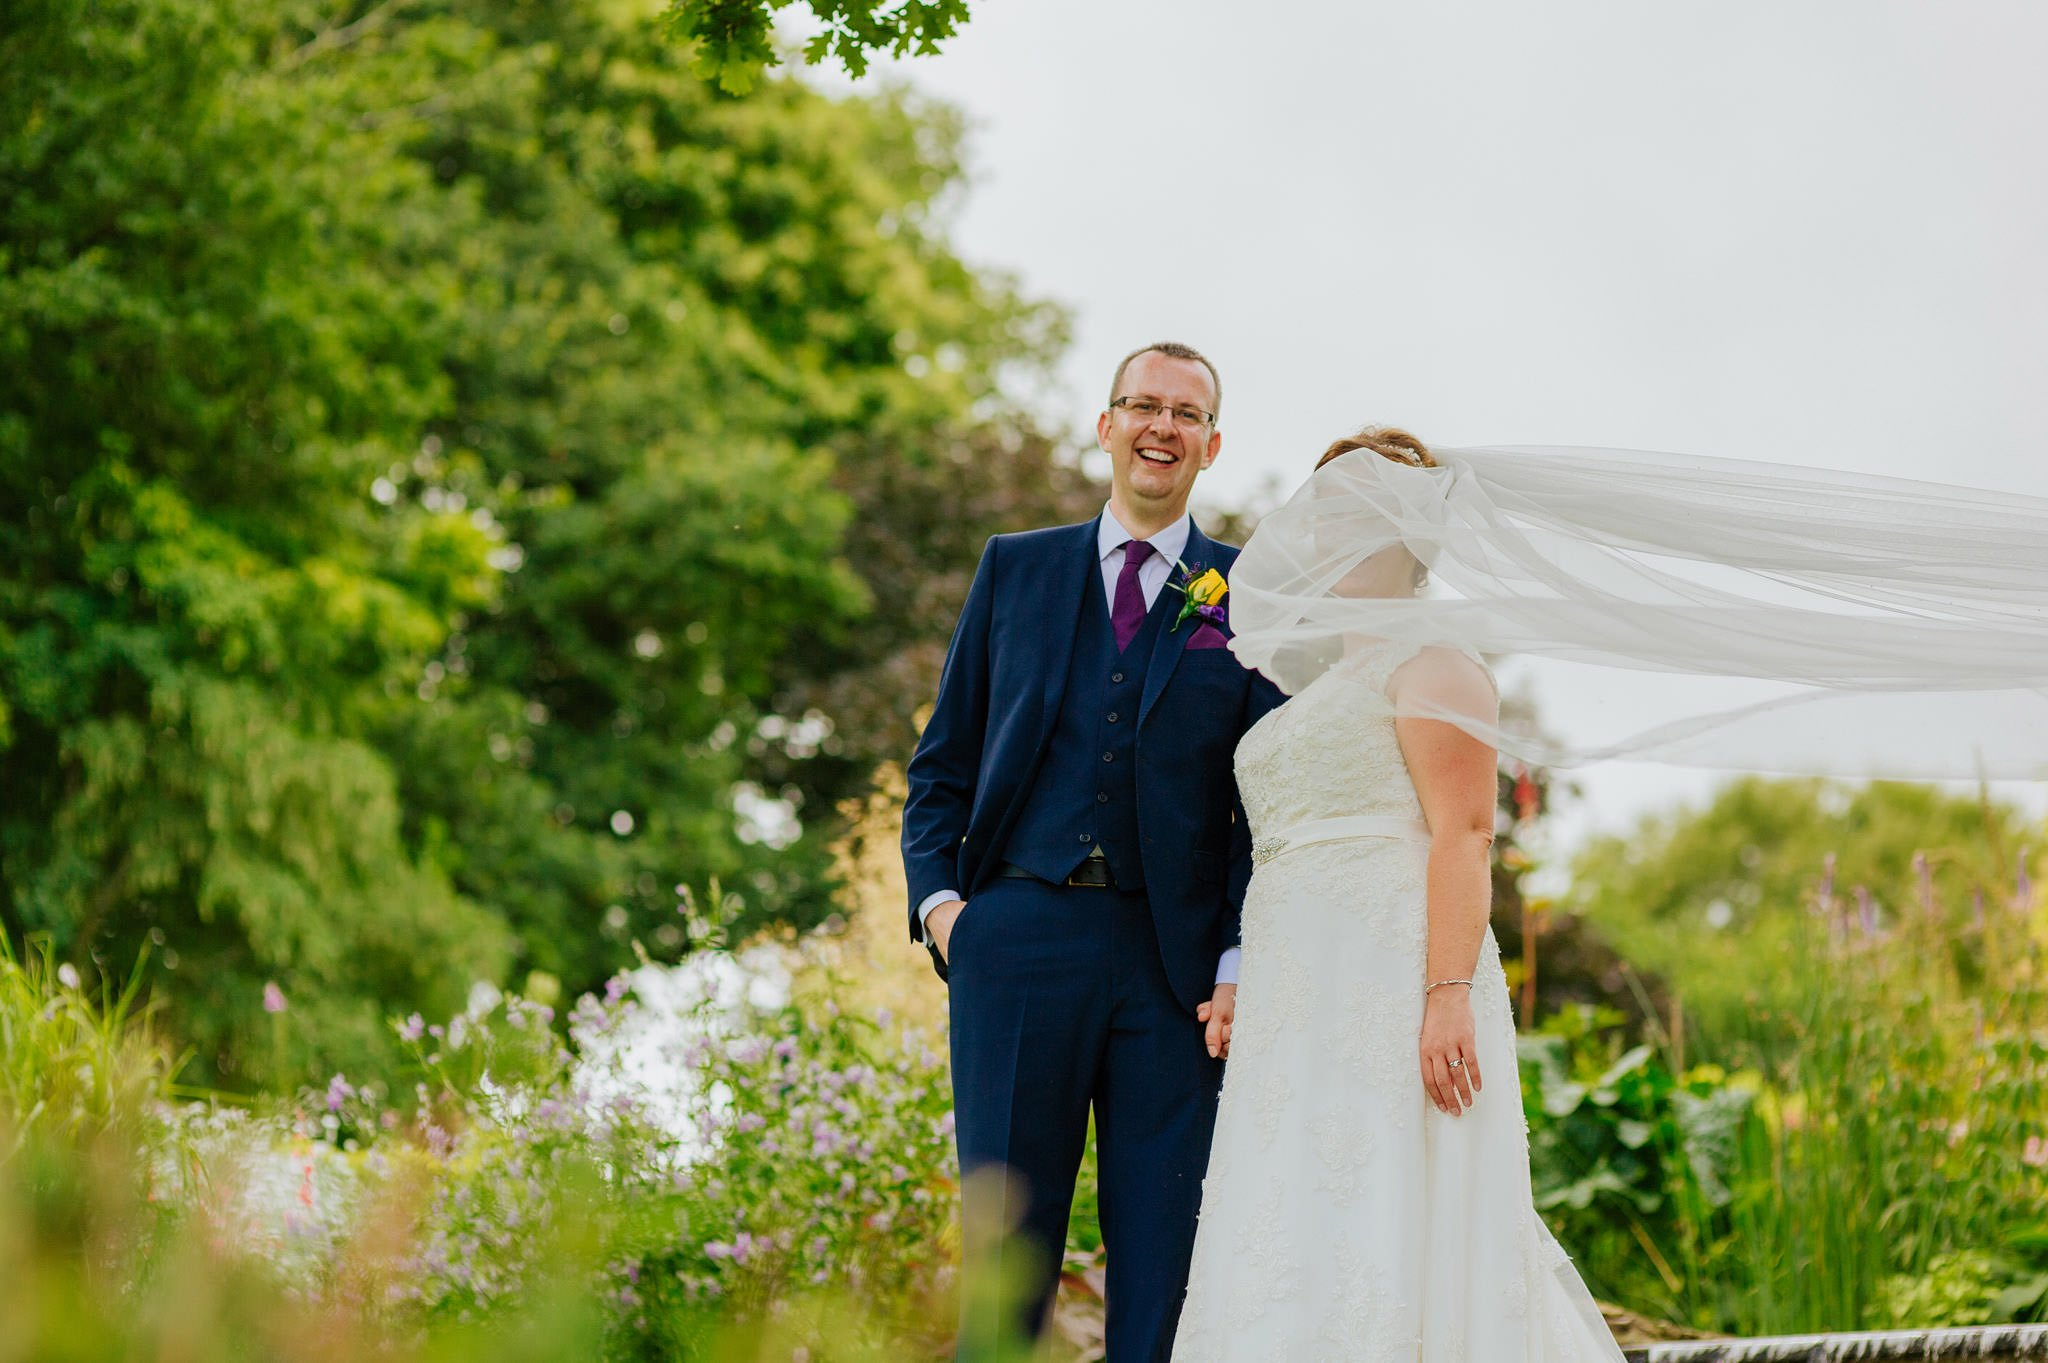 Wedding photography at Homme House in Herefordshire, West Midlands 83